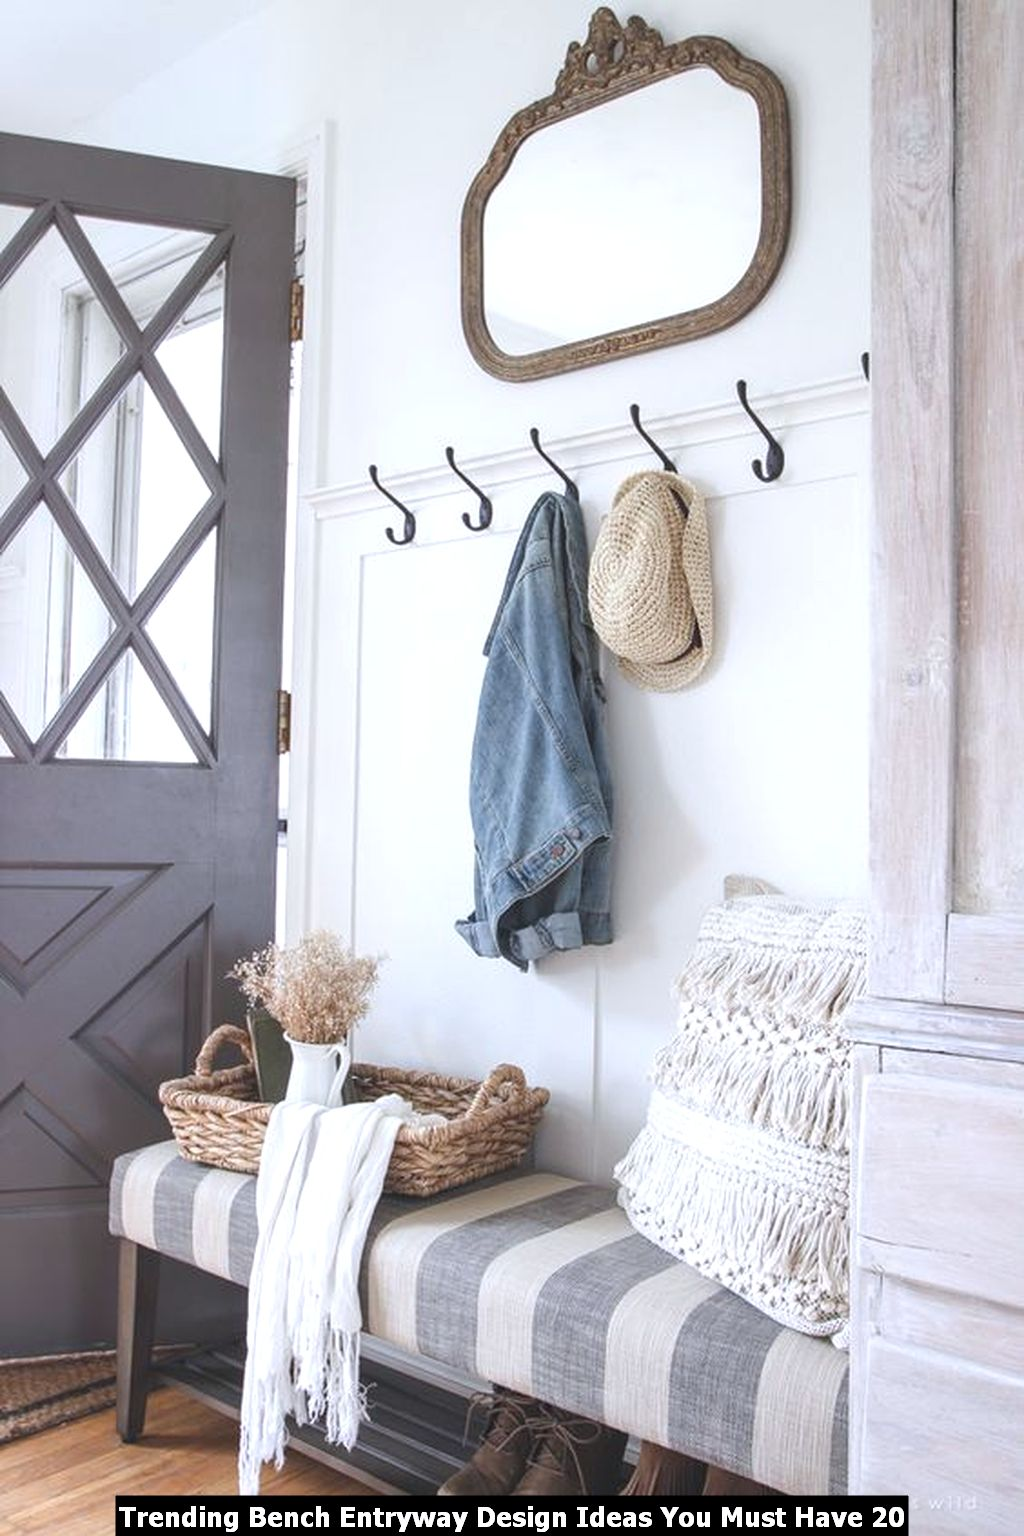 Trending Bench Entryway Design Ideas You Must Have 20